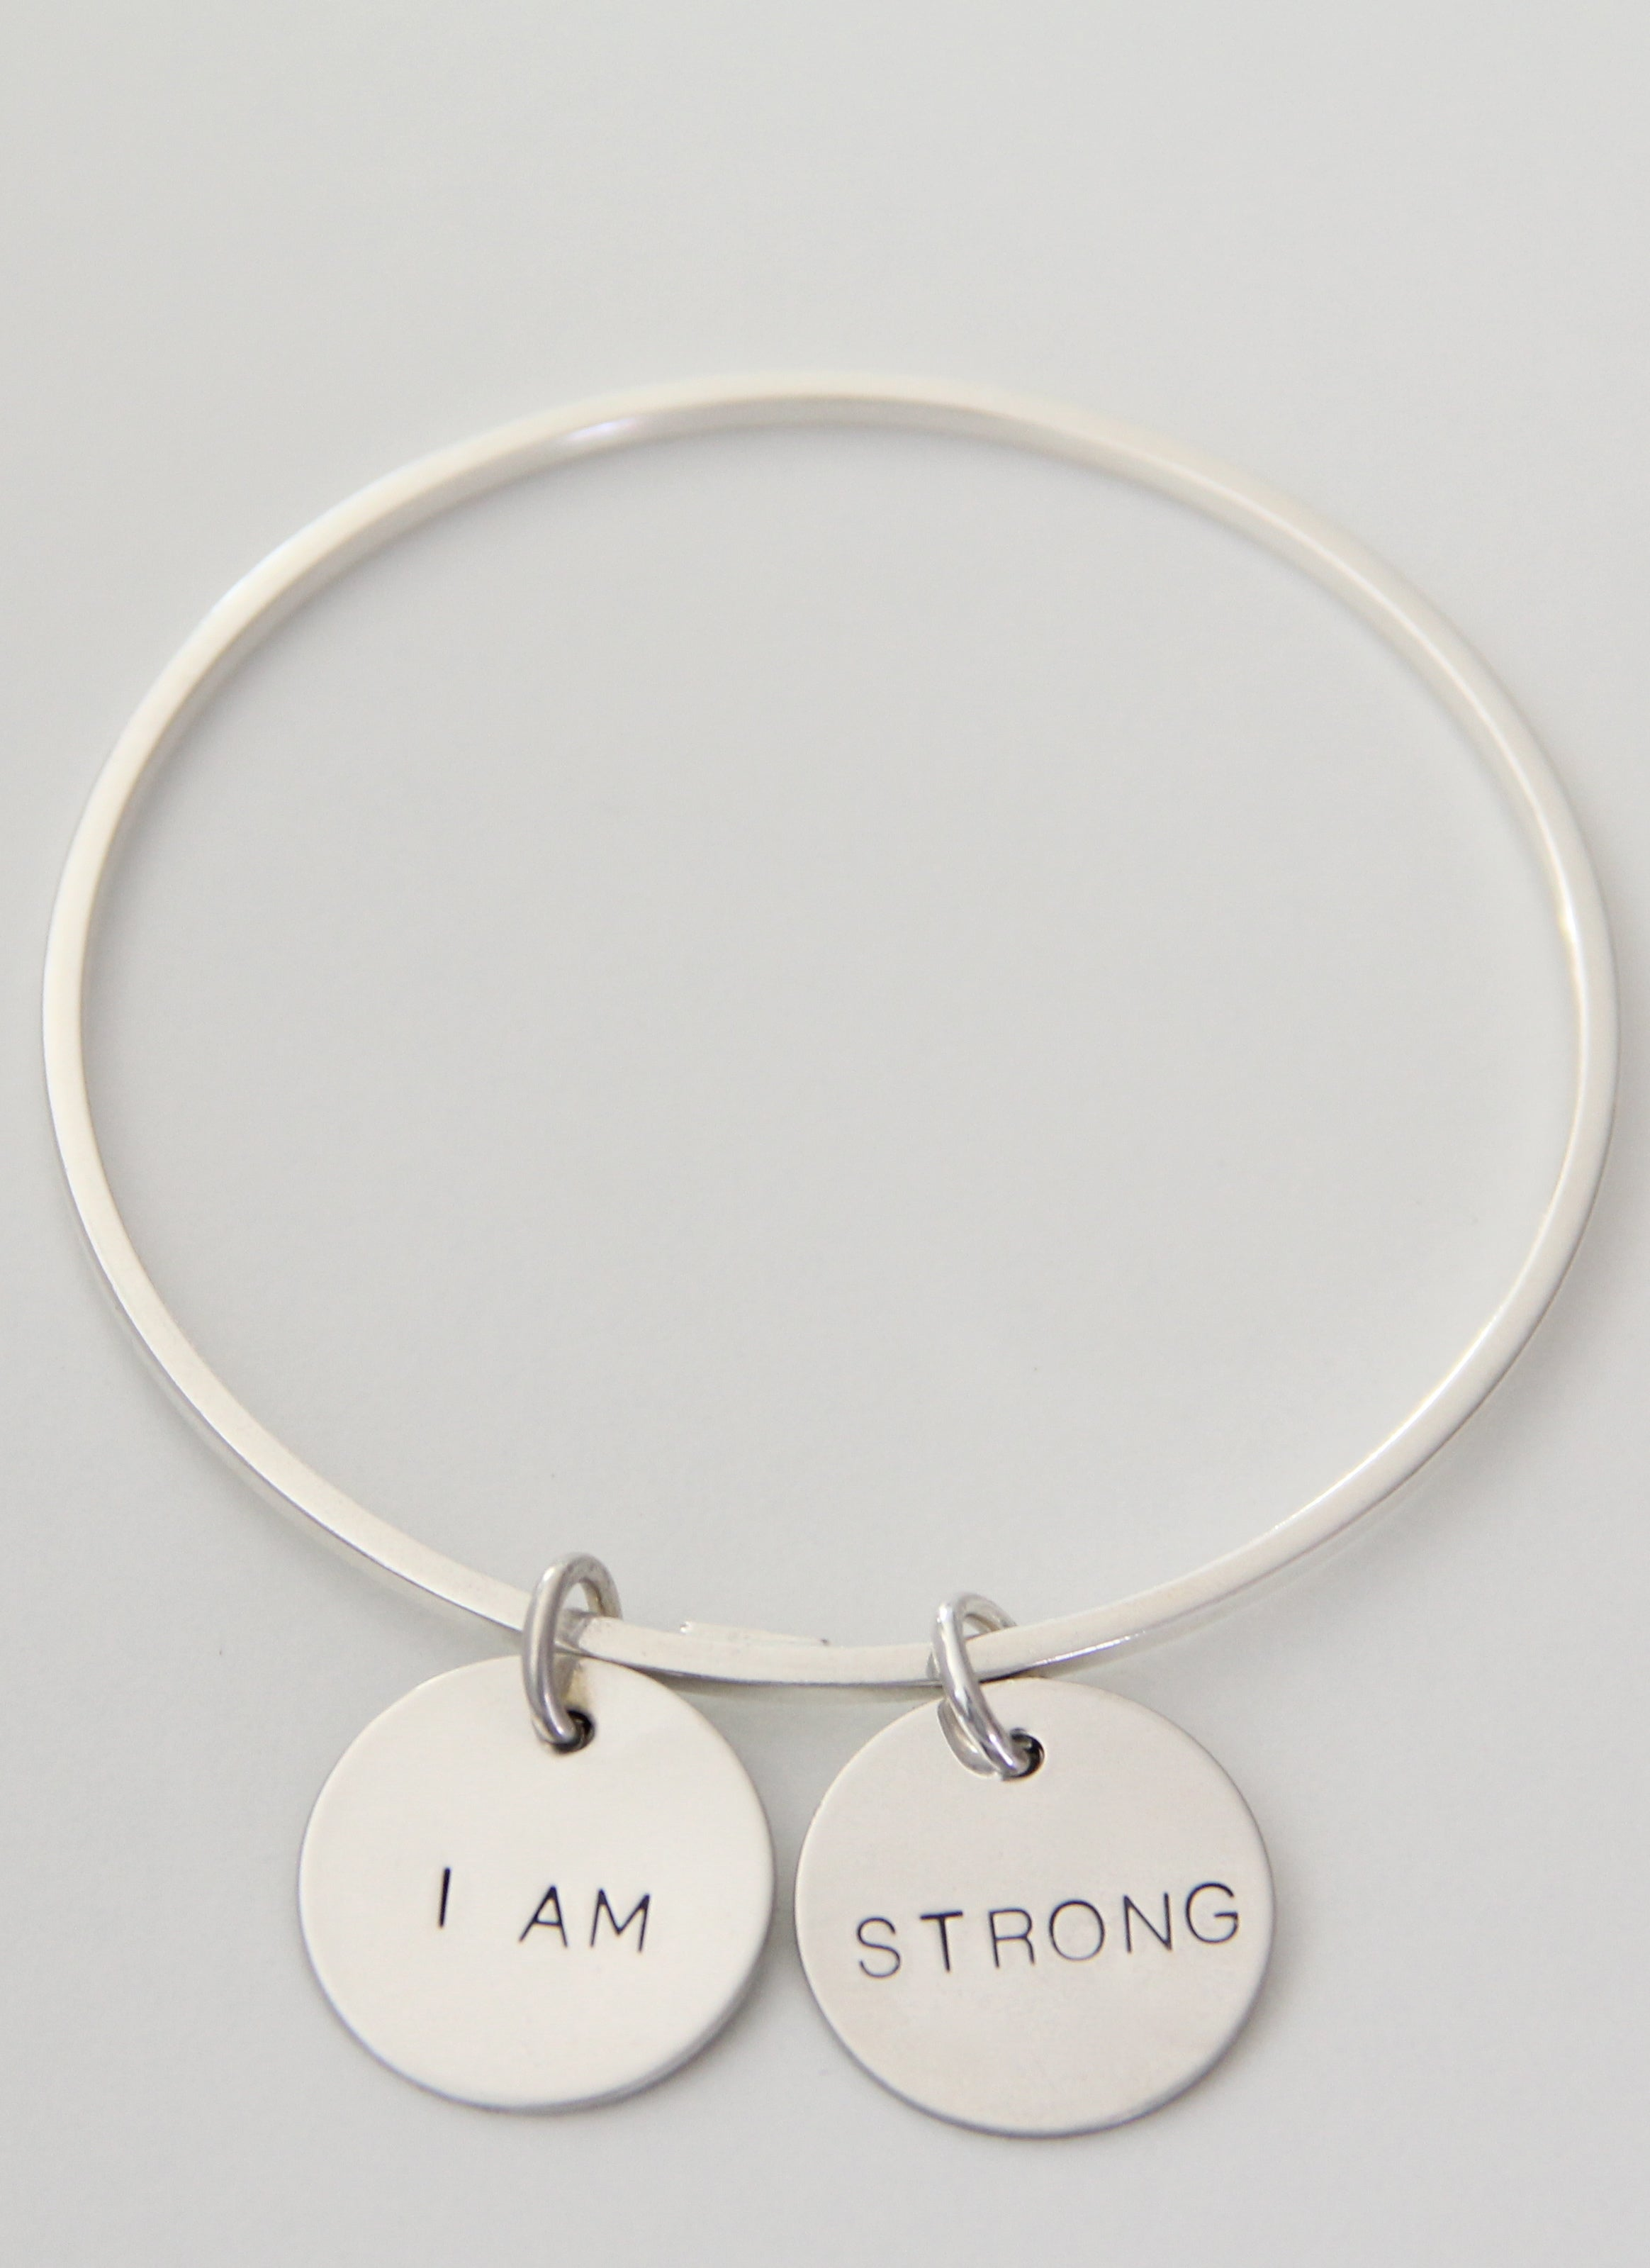 stand strong silver jewelry sage bracelet products